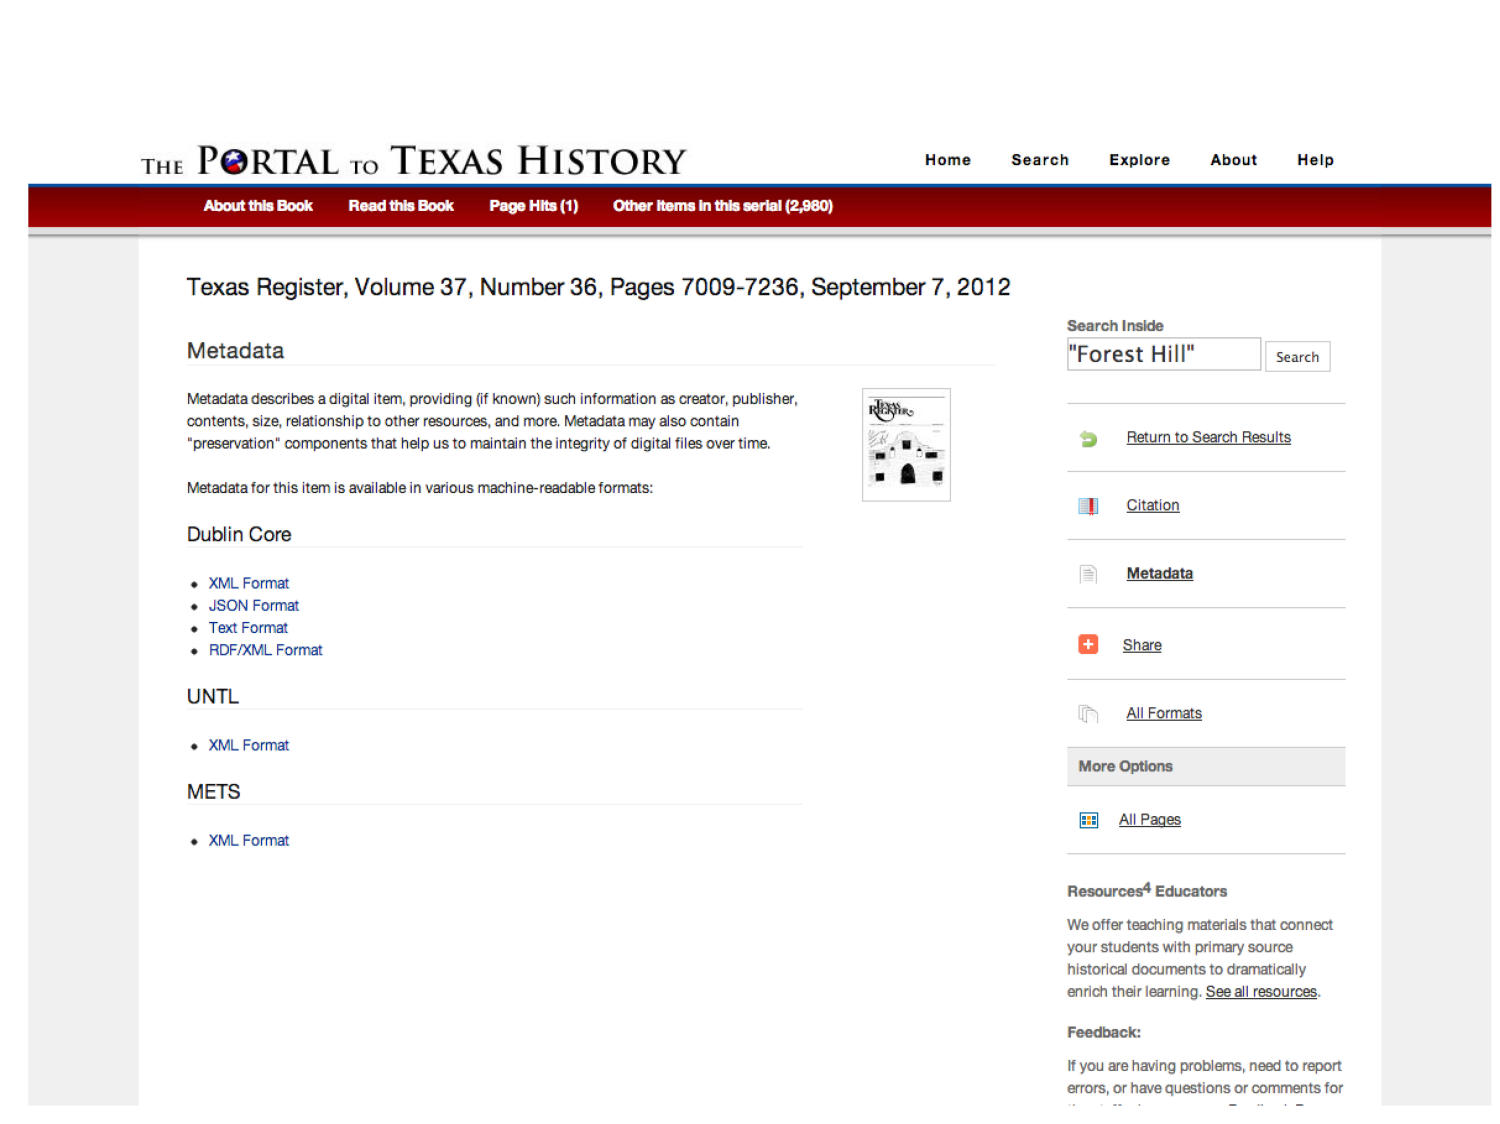 The Portal to Texas History: Technology Overview                                                                                                      [Sequence #]: 25 of 73